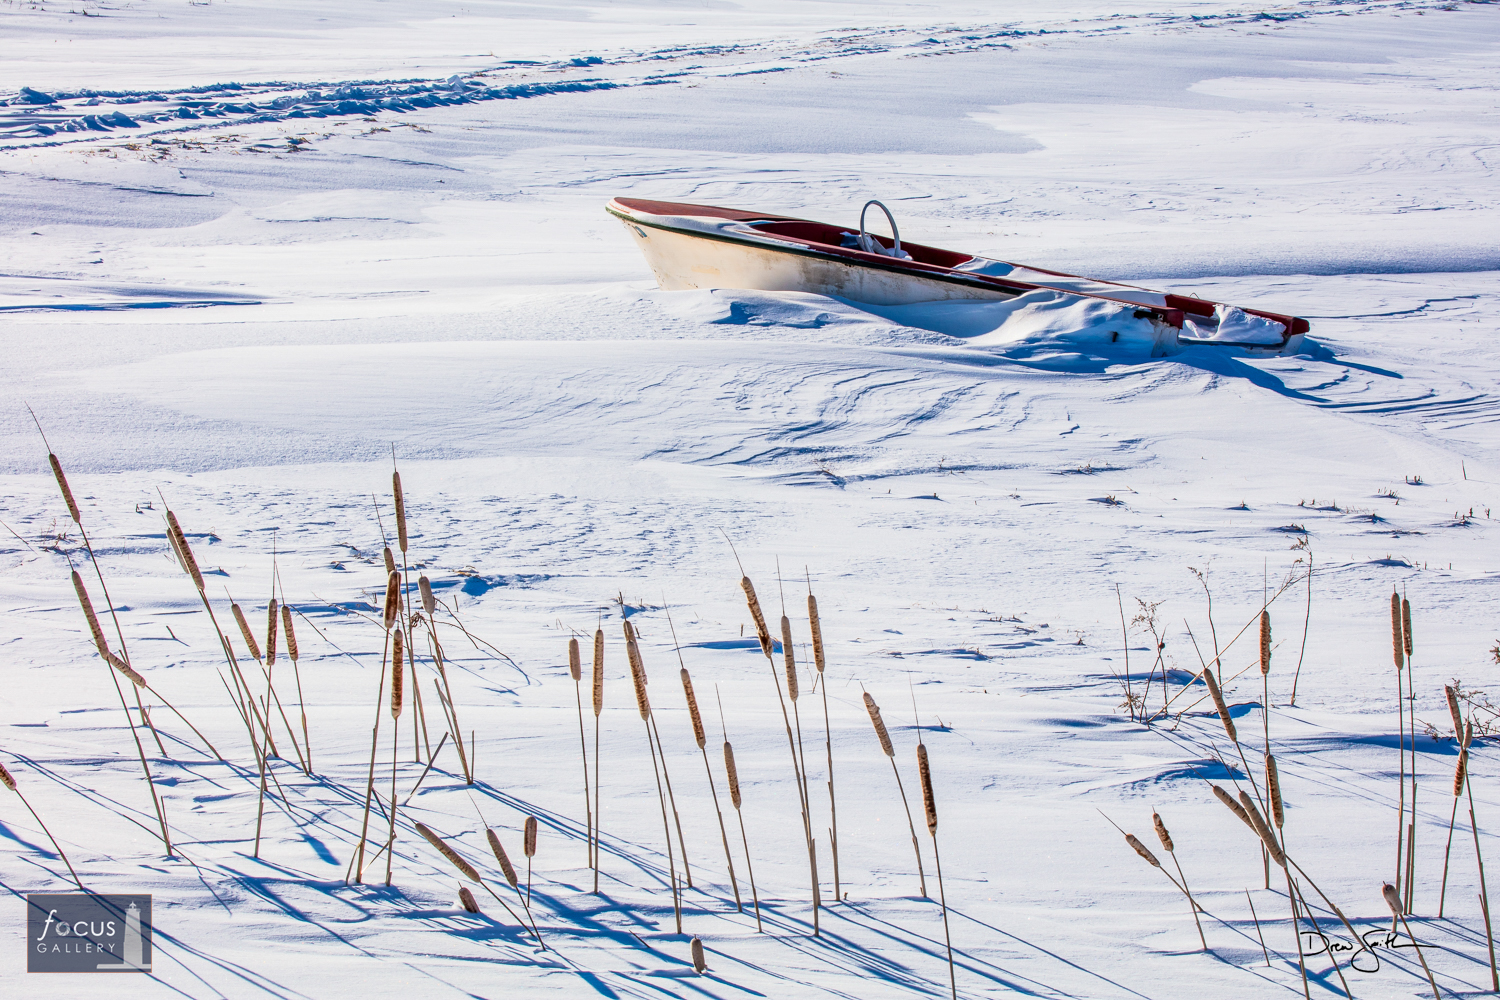 Photo © Drew Smith While on a winter birding trip to the Eastern Upper Peninsula I spent time around Rudyard and Pickford, checking...